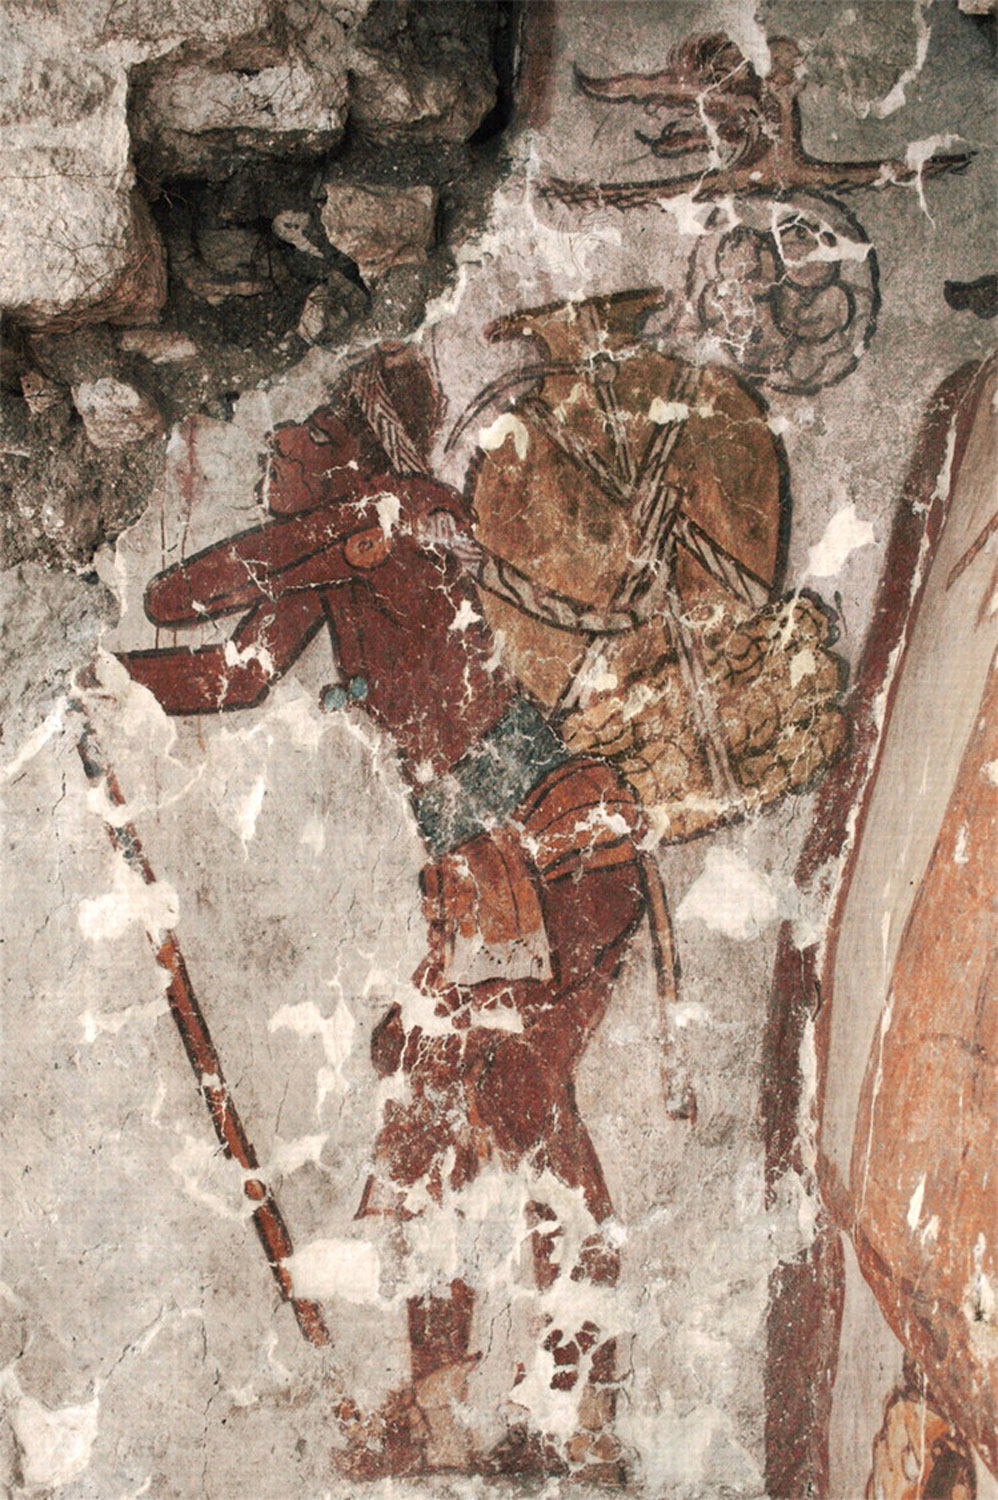 The slaves carried the products on their backs, fastened on the forehead. From a mural at Calakmul museum.